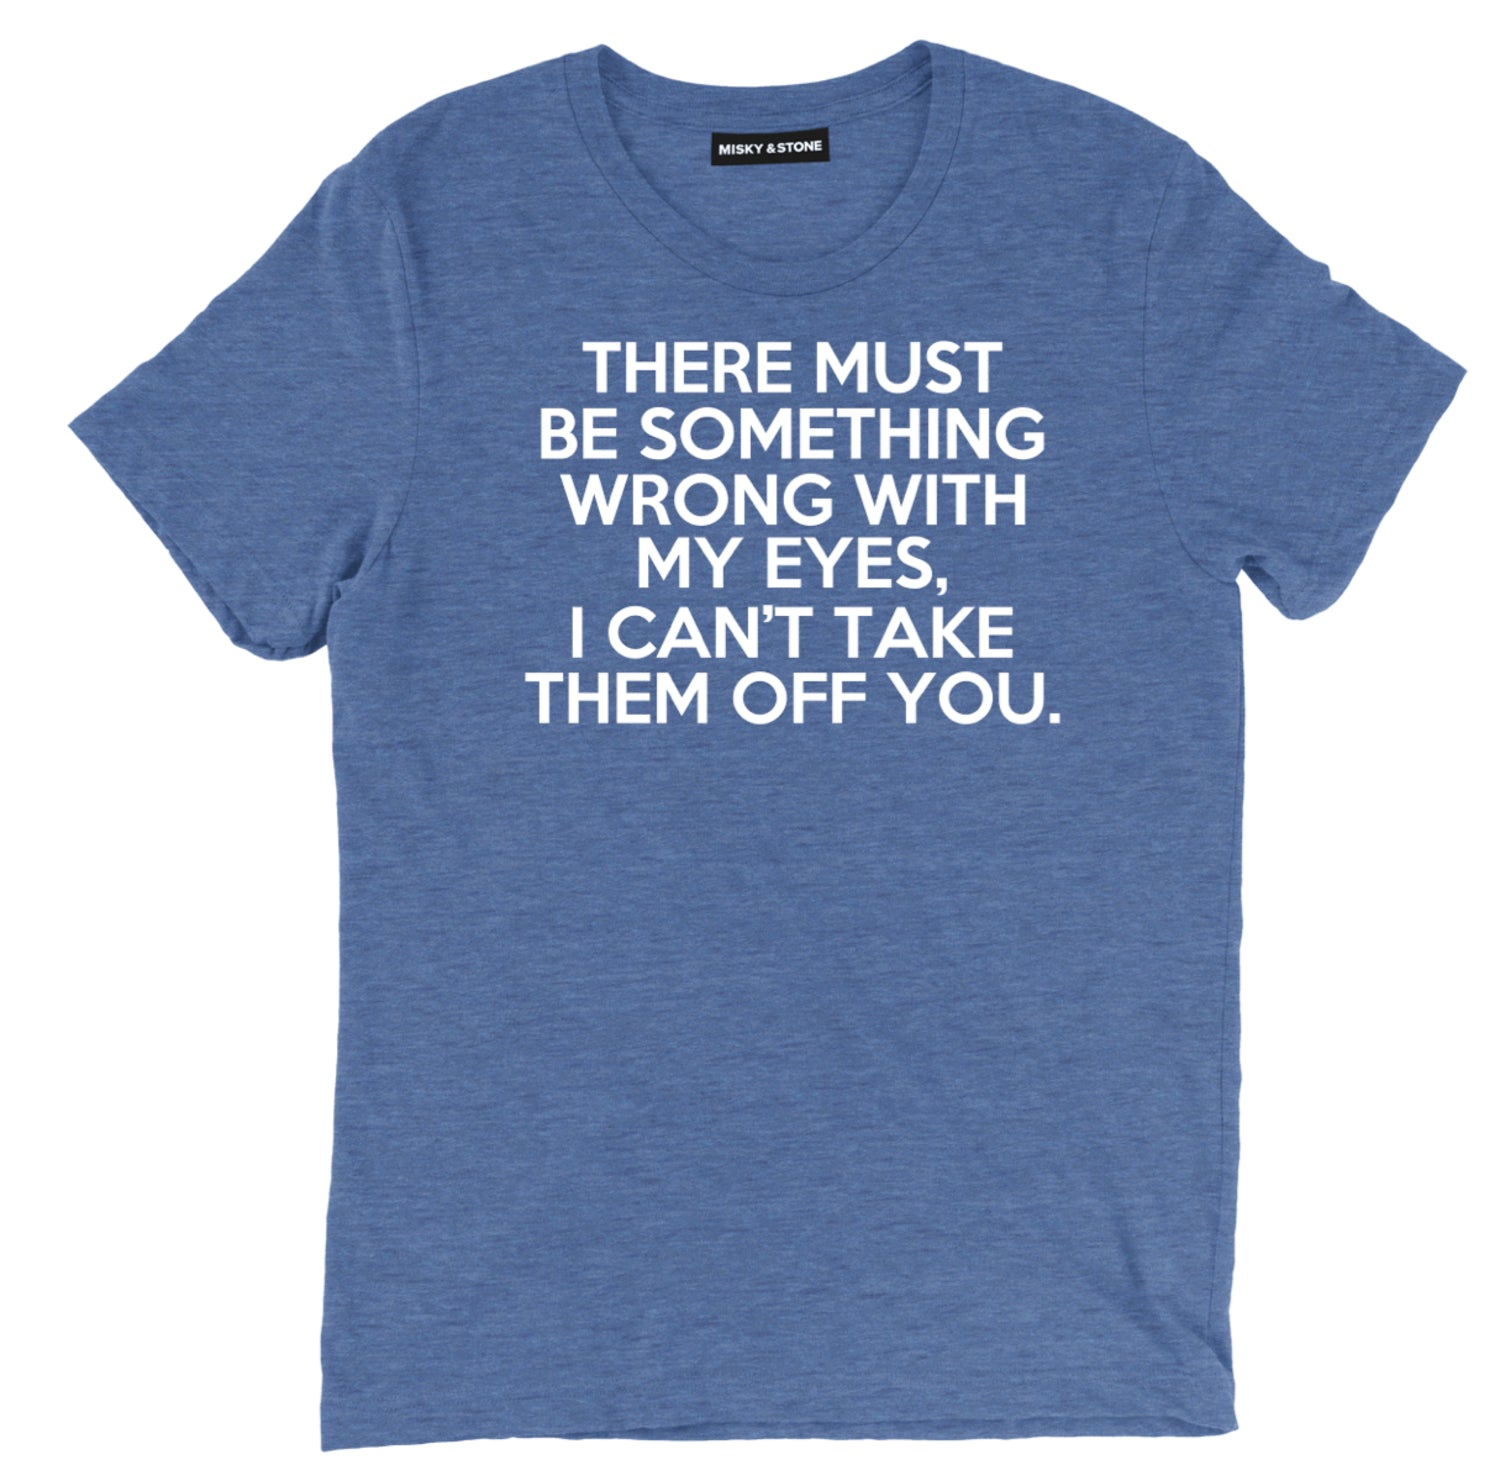 there must be something wrong with my eyes sarcastic t shirts, i cant keep my eyes off you sarcastic shirts, sarcastic pick up line tee shirts, sarcastic tees, sarcastic t shirt sayings, sarcastic t shirts quotes, funny sarcastic t shirts,